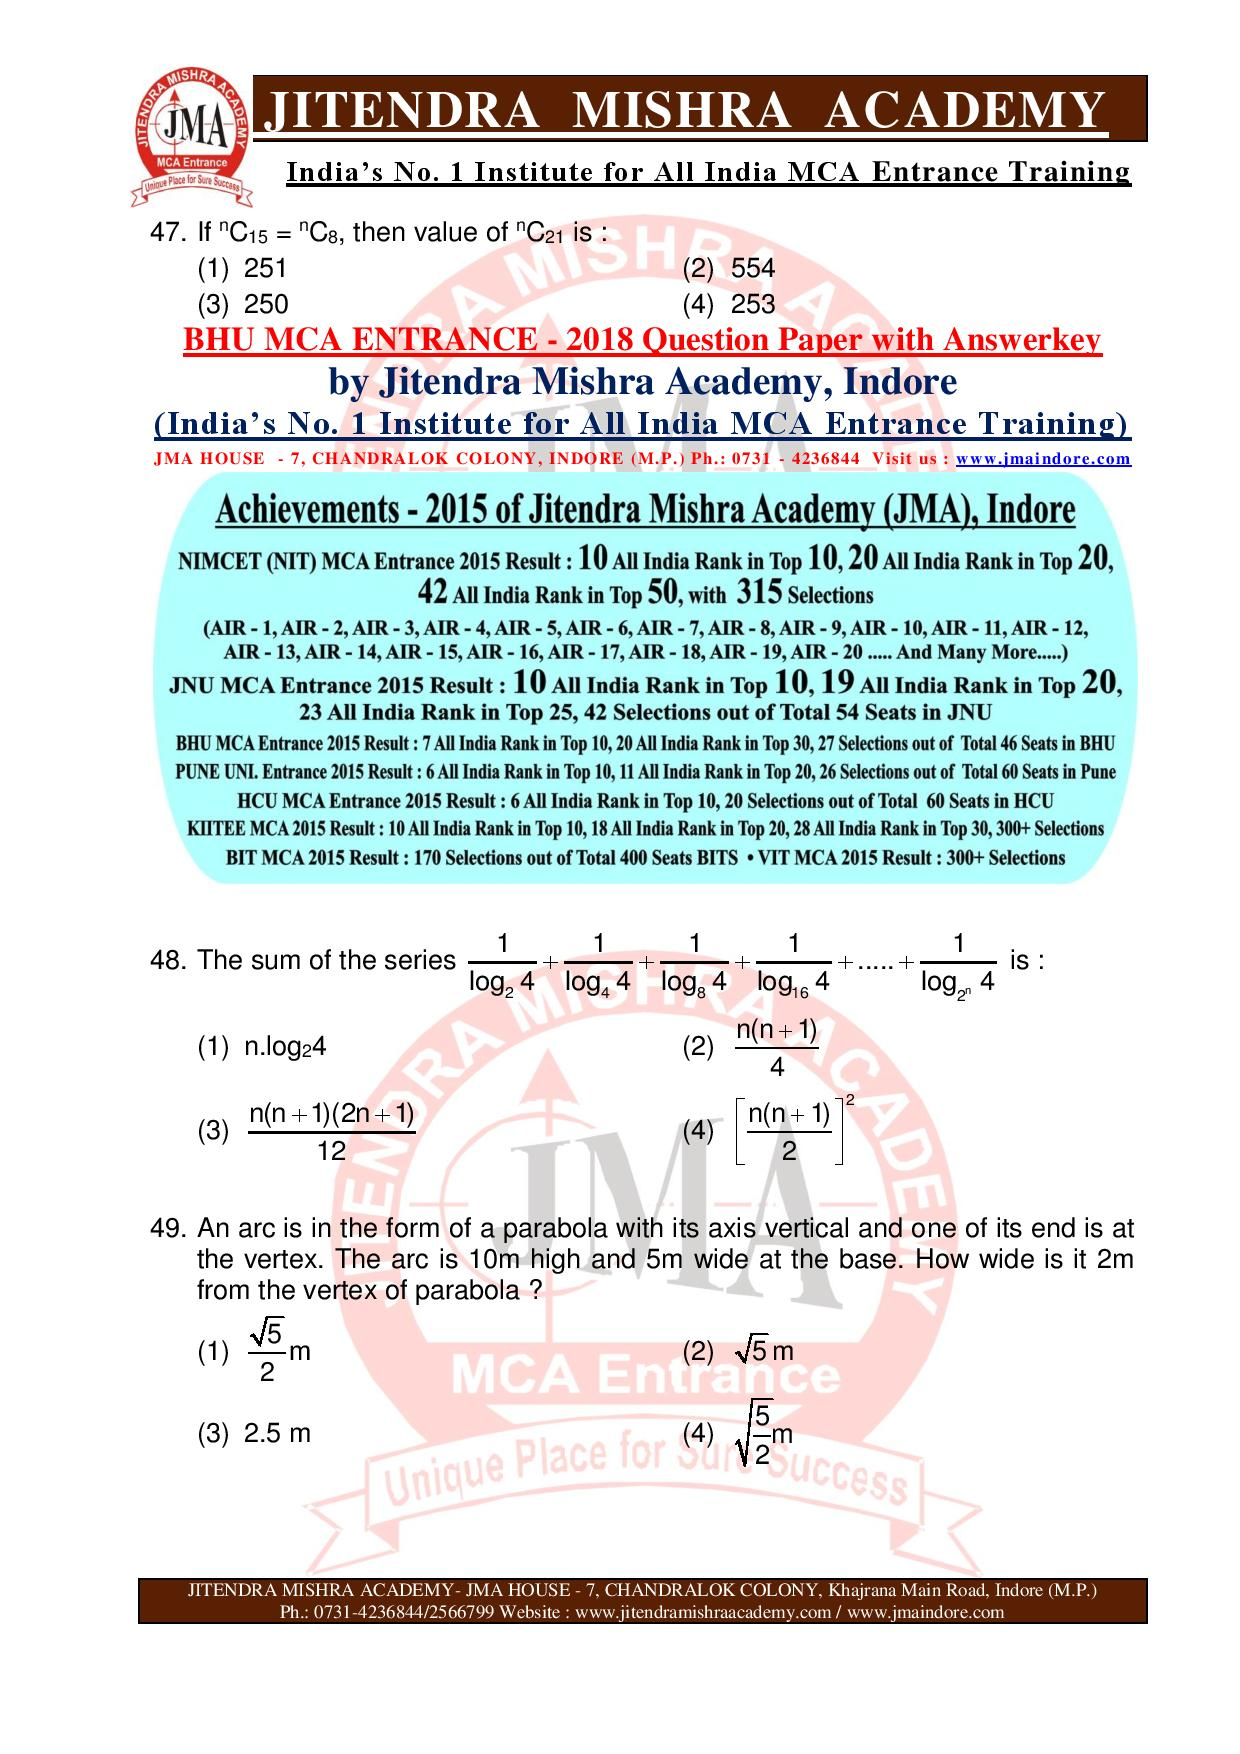 BHU MCA 2018 QUESTION PAPER12-page-015